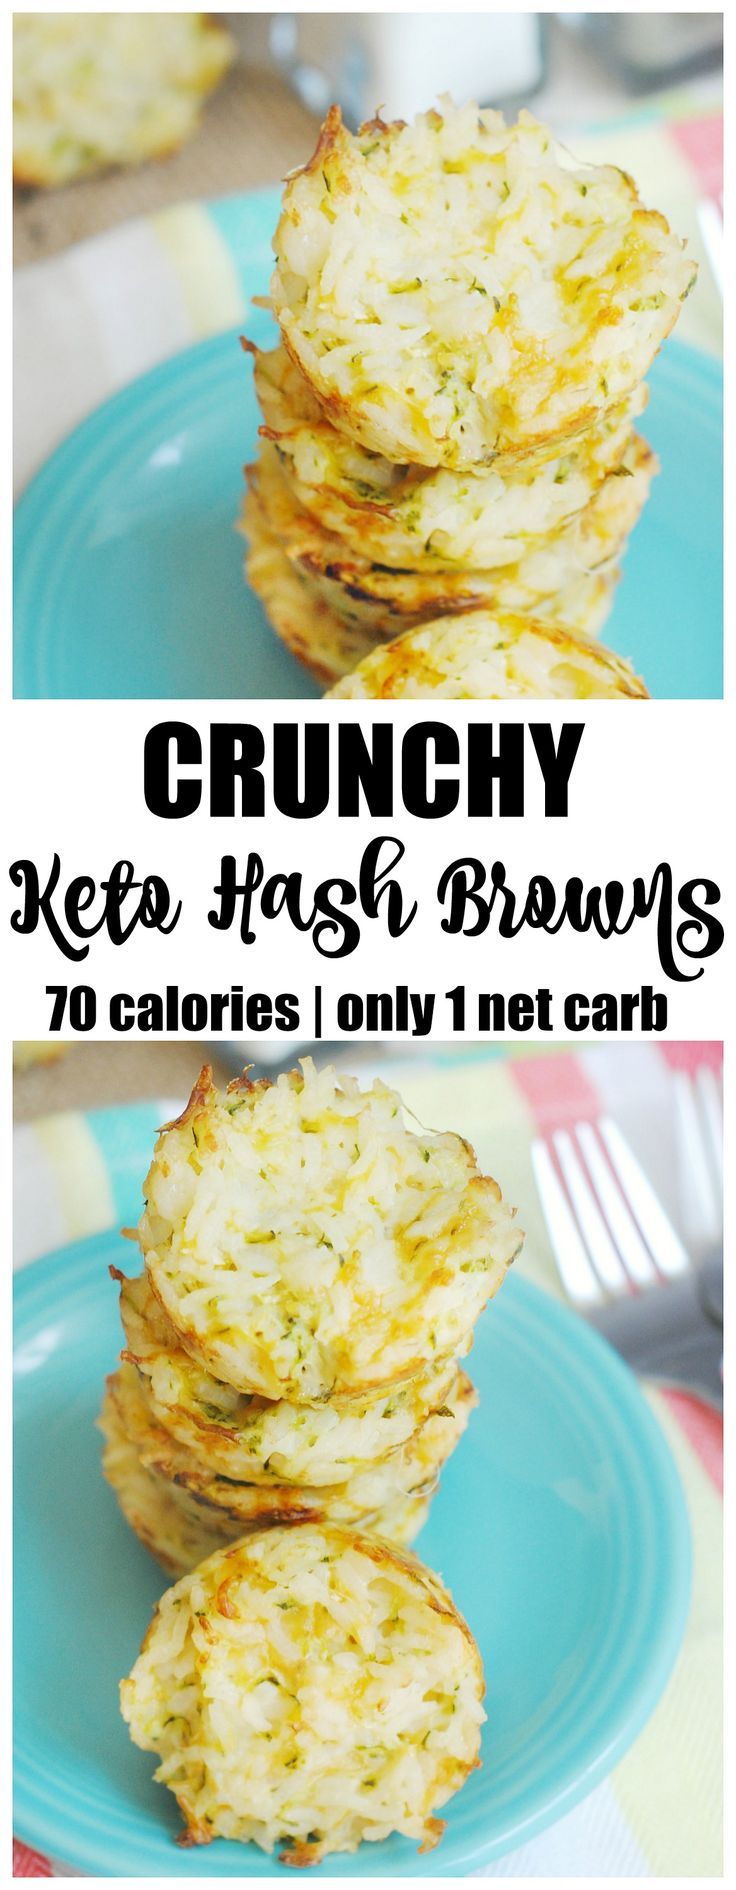 Keto hash browns are a yummy addition to any breakfast or even as a snack. They are crunchy, low carb and made with a popular potato alternative.  breakfast, low carb, family friendly, back to school, eggs, make ahead, freezer meal.